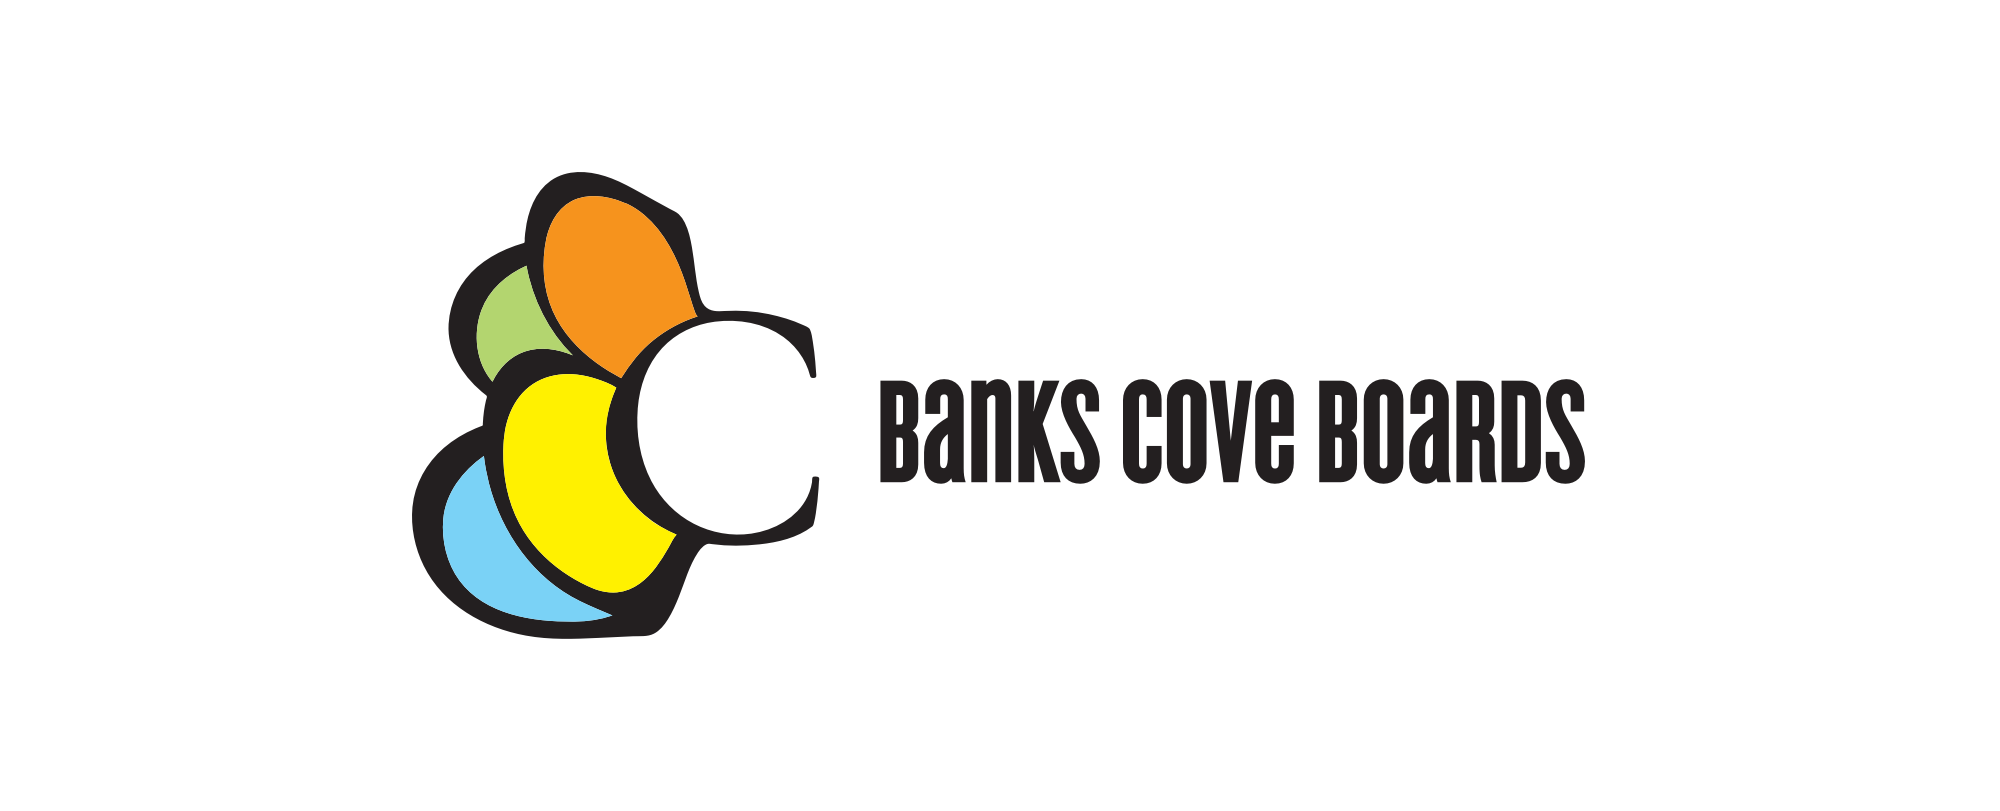 Banks Cove Boards Identity